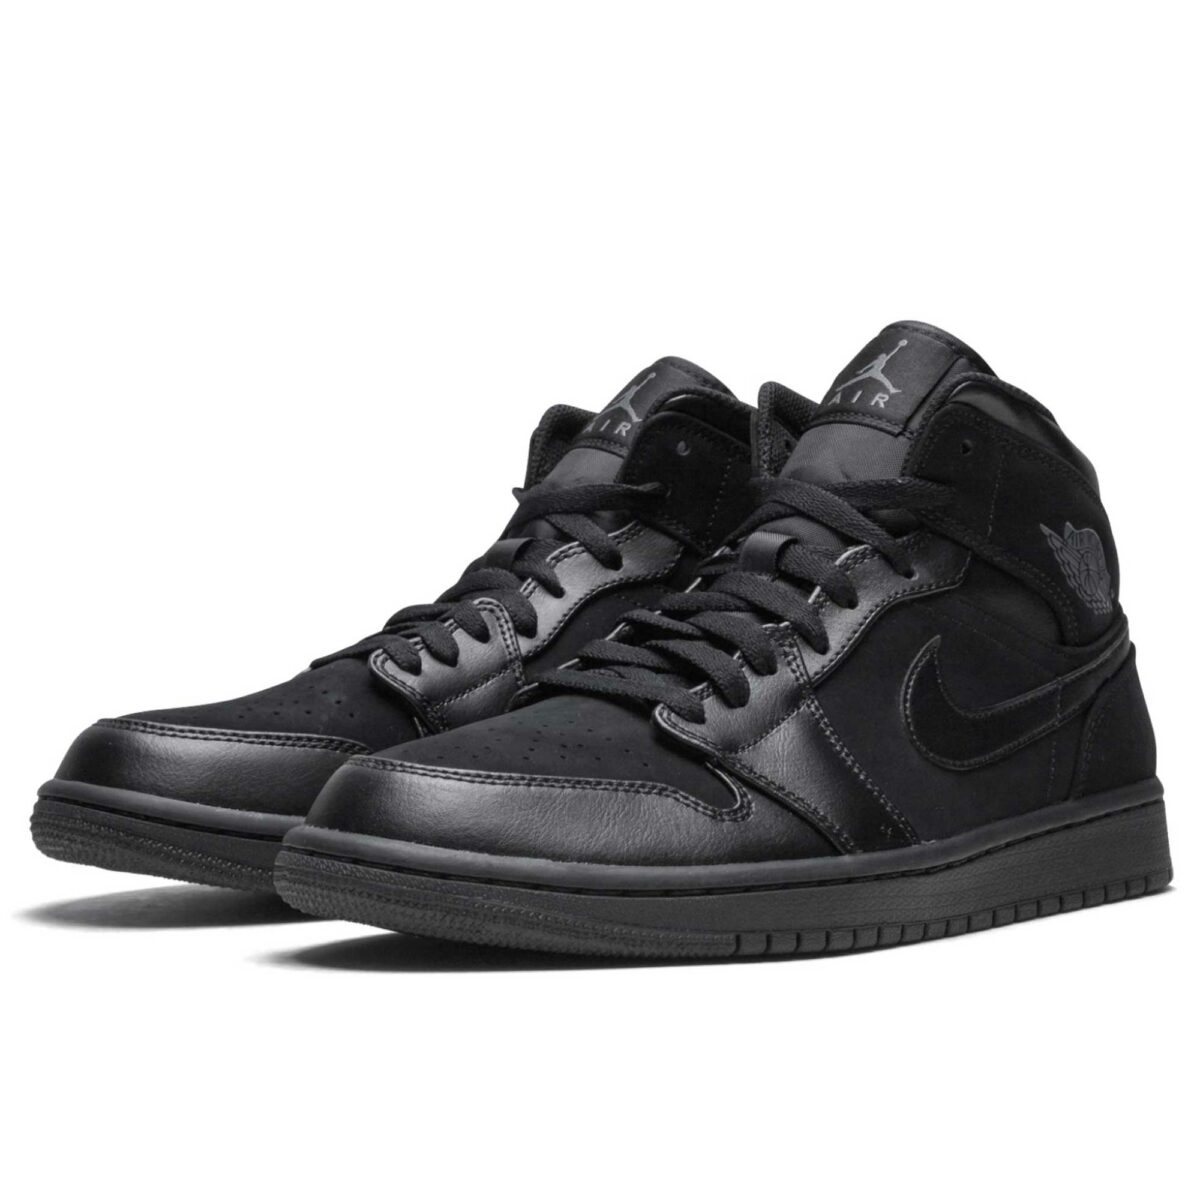 nike air Jordan 1 mid black 554724_050 купить